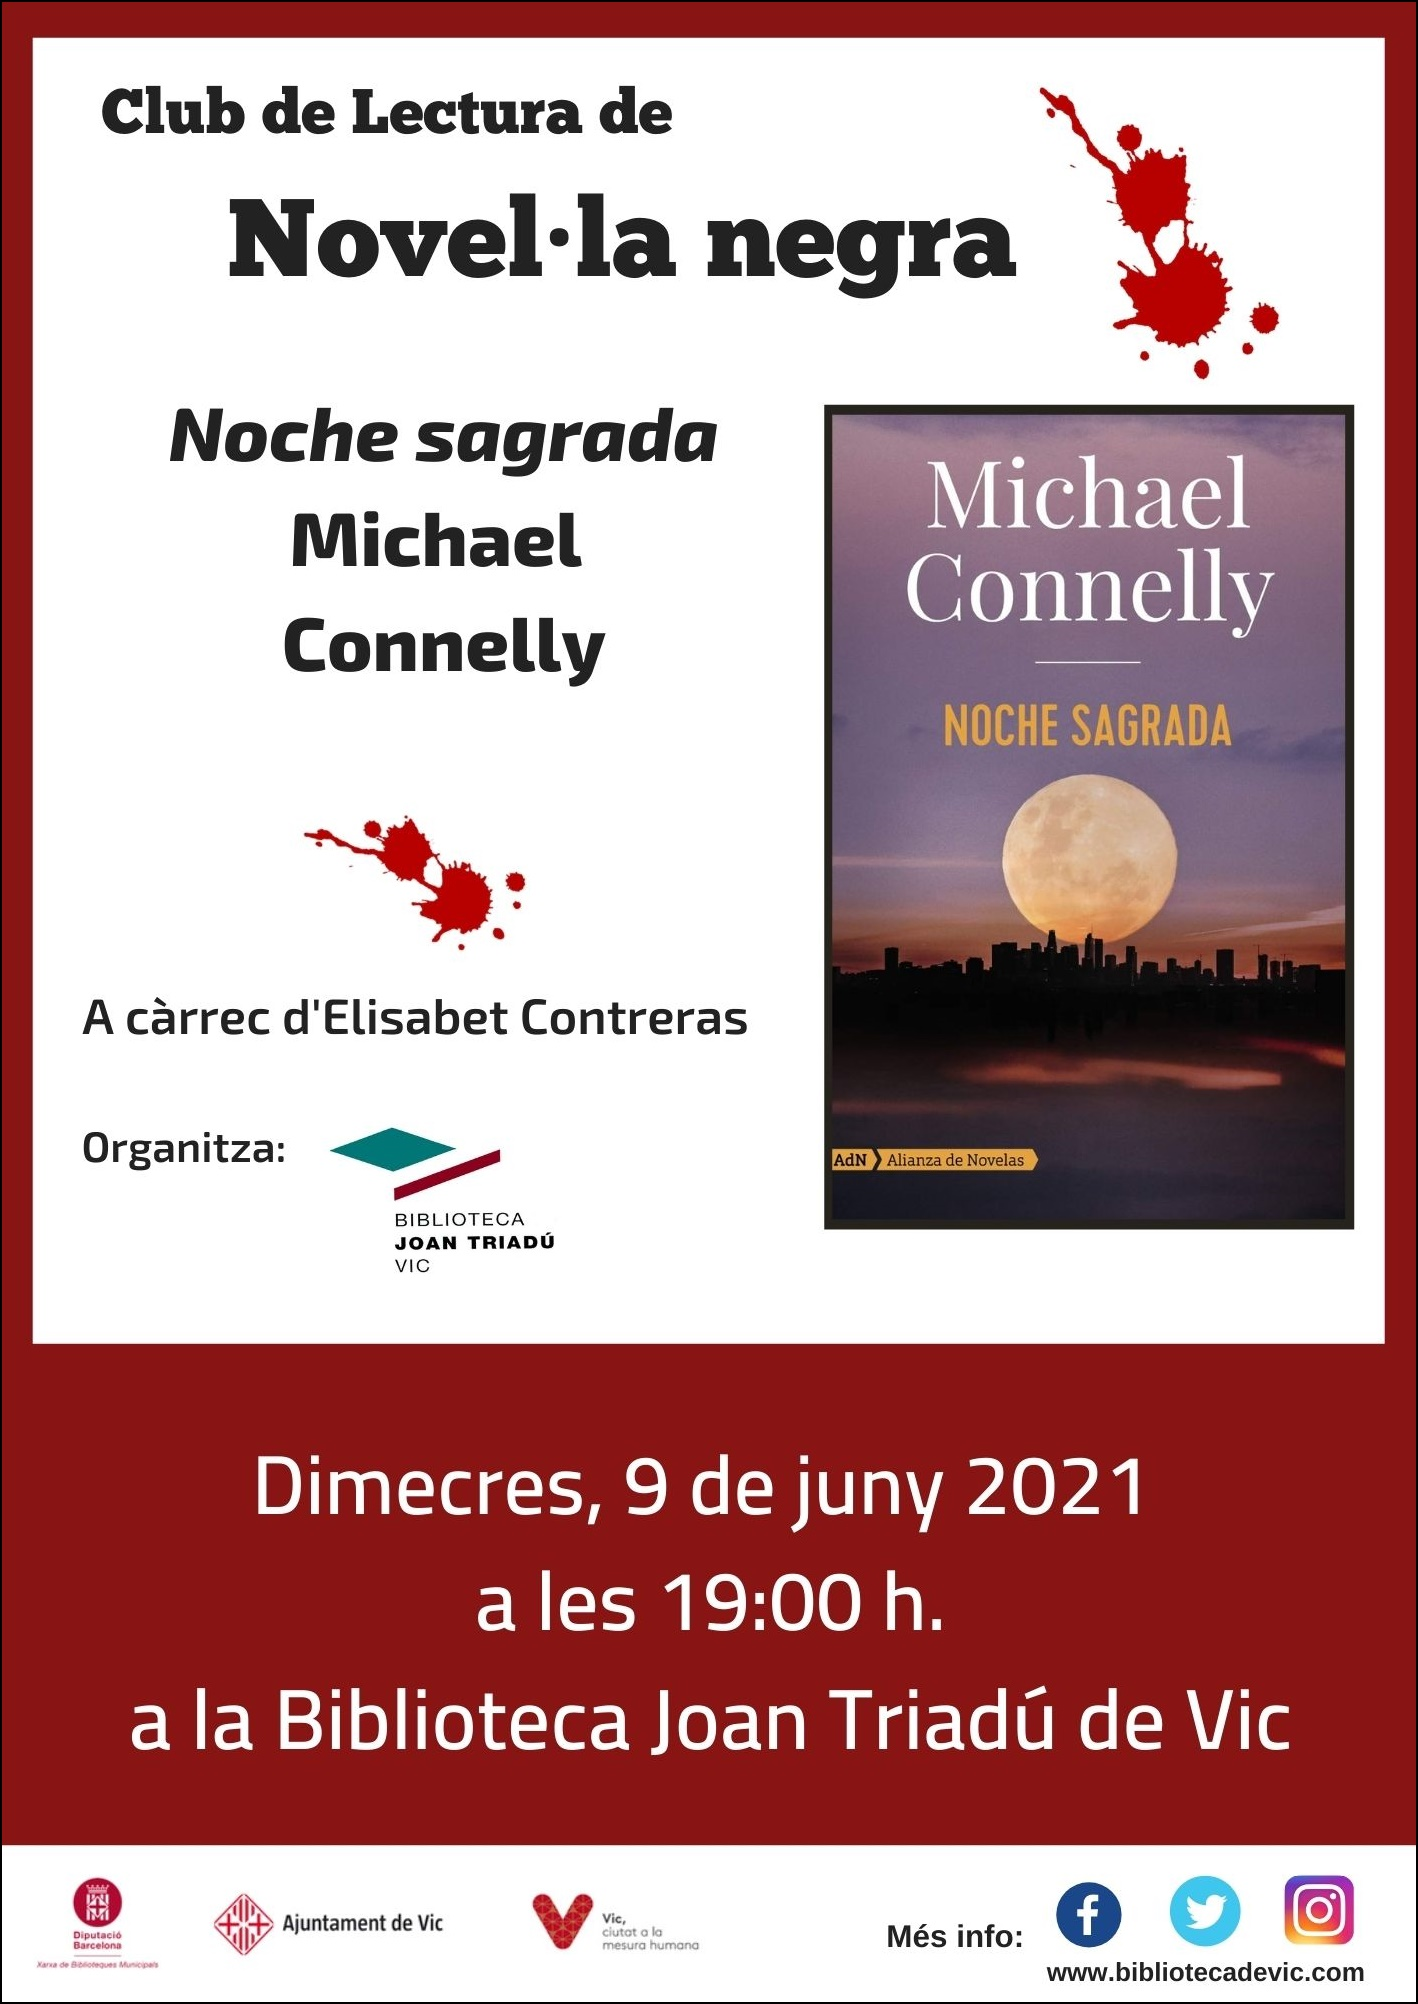 Club de lectura de novel·la negra: Noche sagrada de Michael Connelly